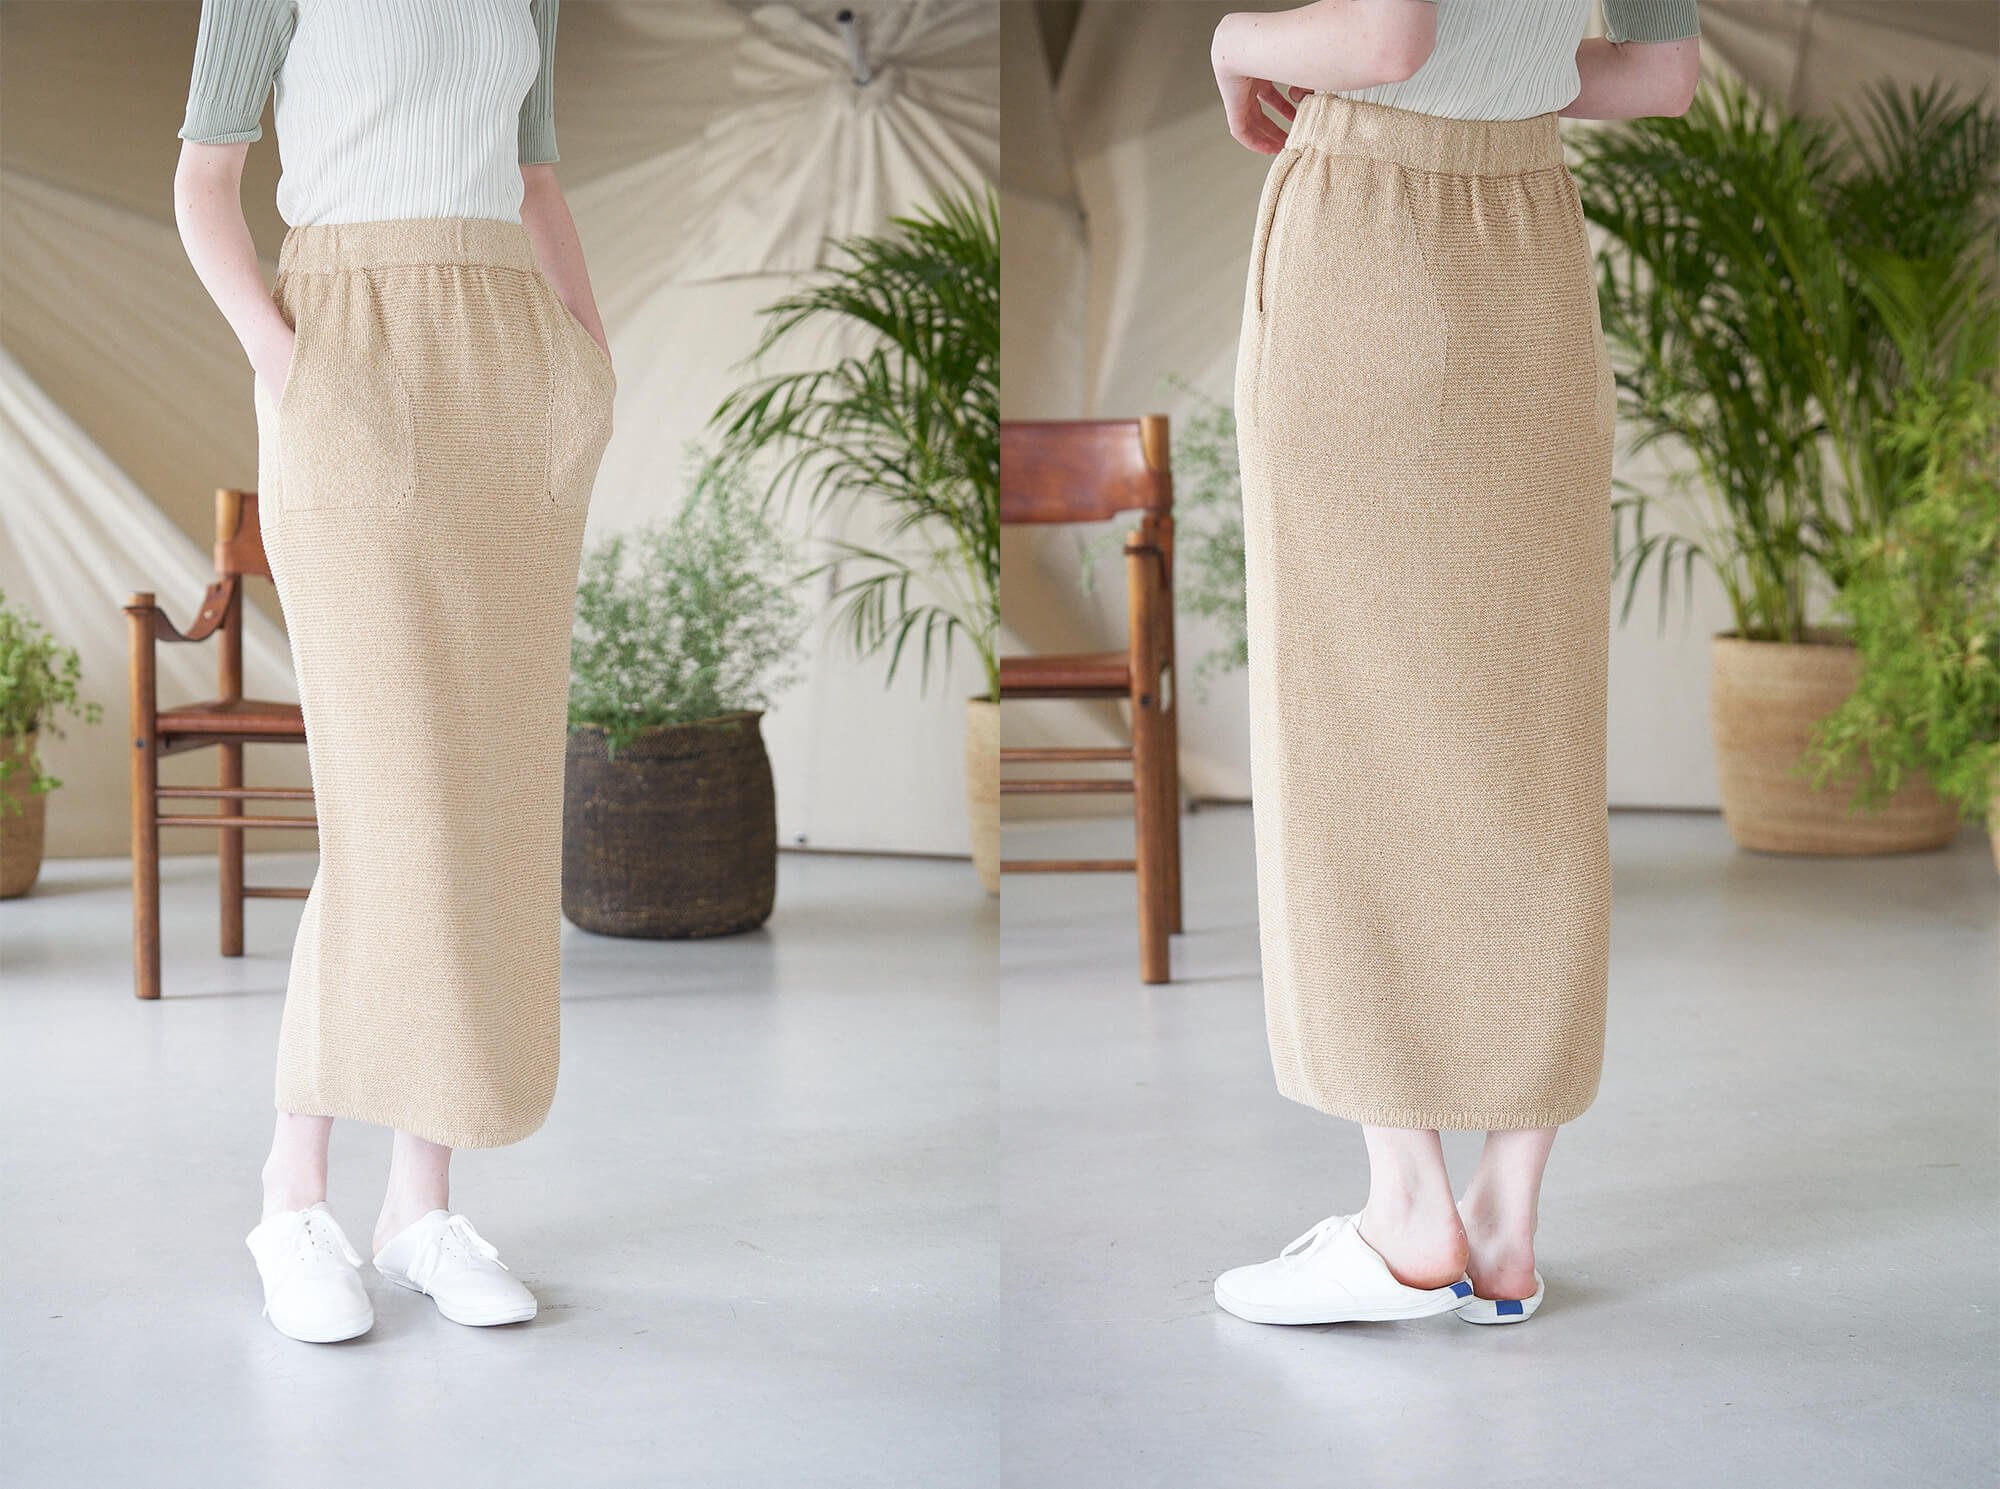 <img class='new_mark_img1' src='https://img.shop-pro.jp/img/new/icons14.gif' style='border:none;display:inline;margin:0px;padding:0px;width:auto;' />mulberry & raw silk knit skirt